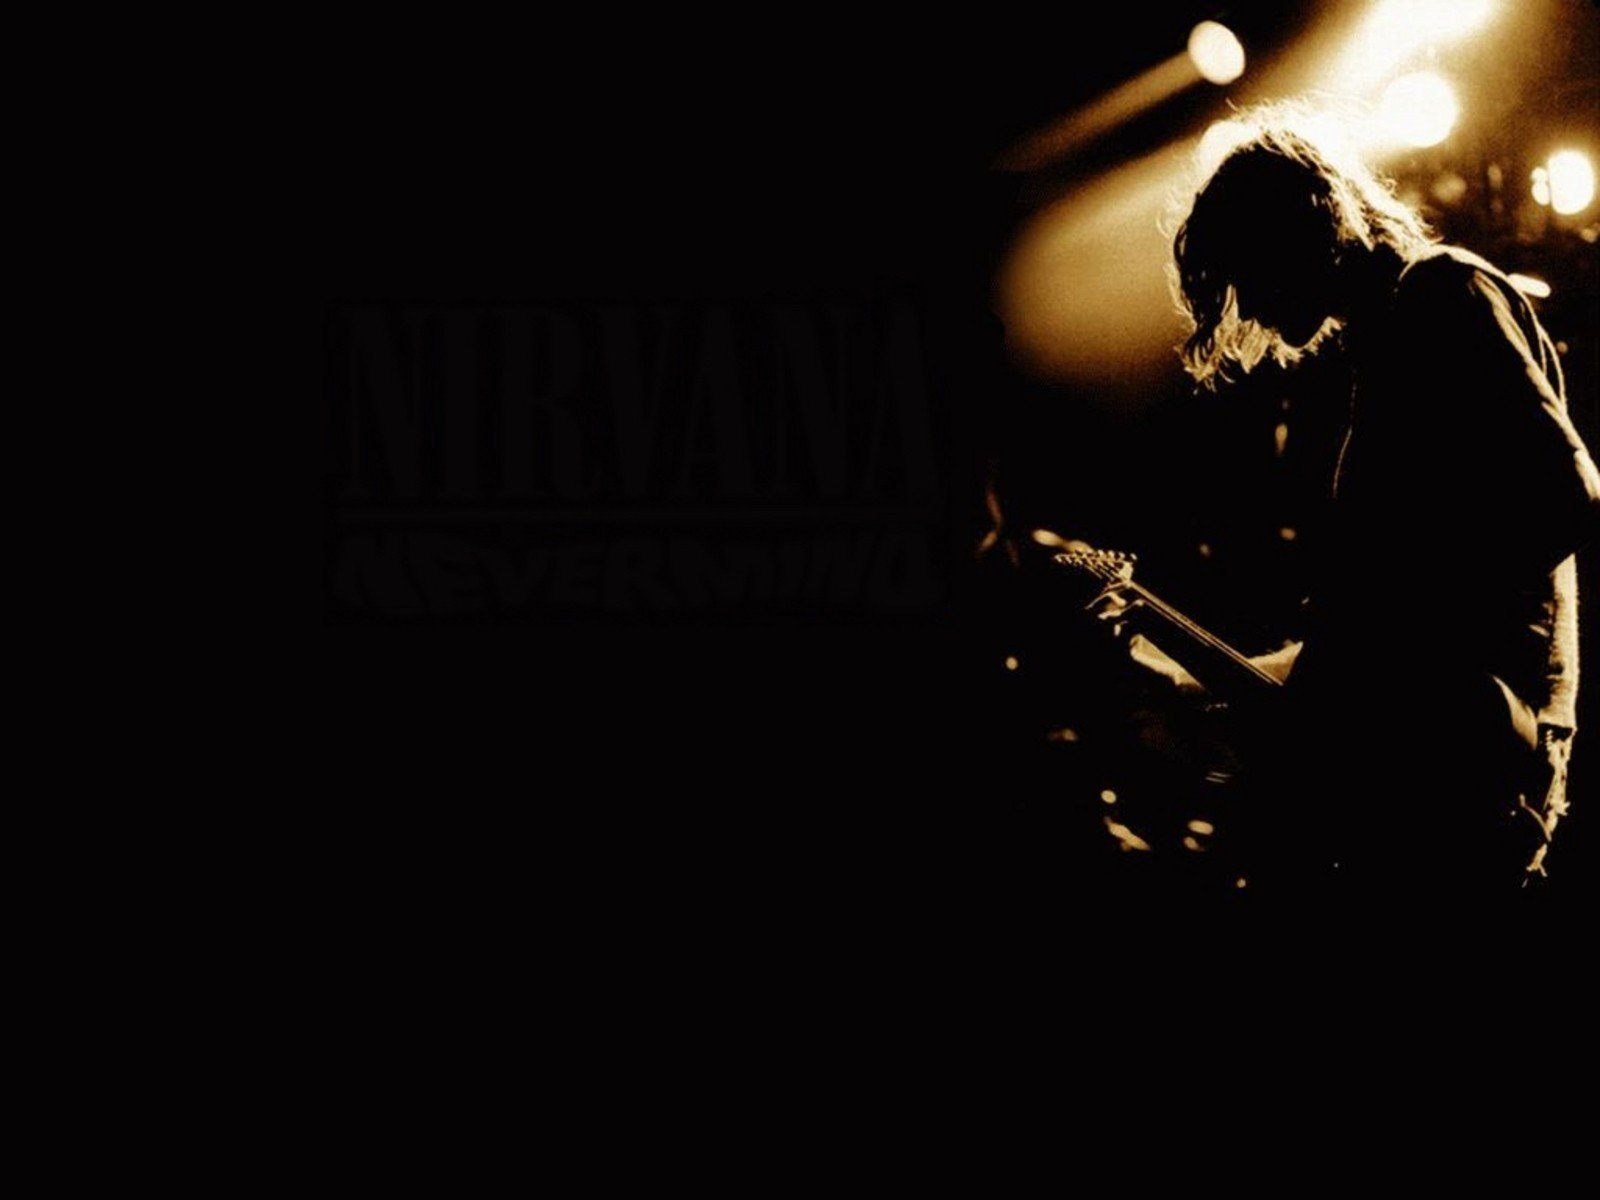 NIRVANA WALLPAPERS FREE Wallpapers Background images 1600x1200